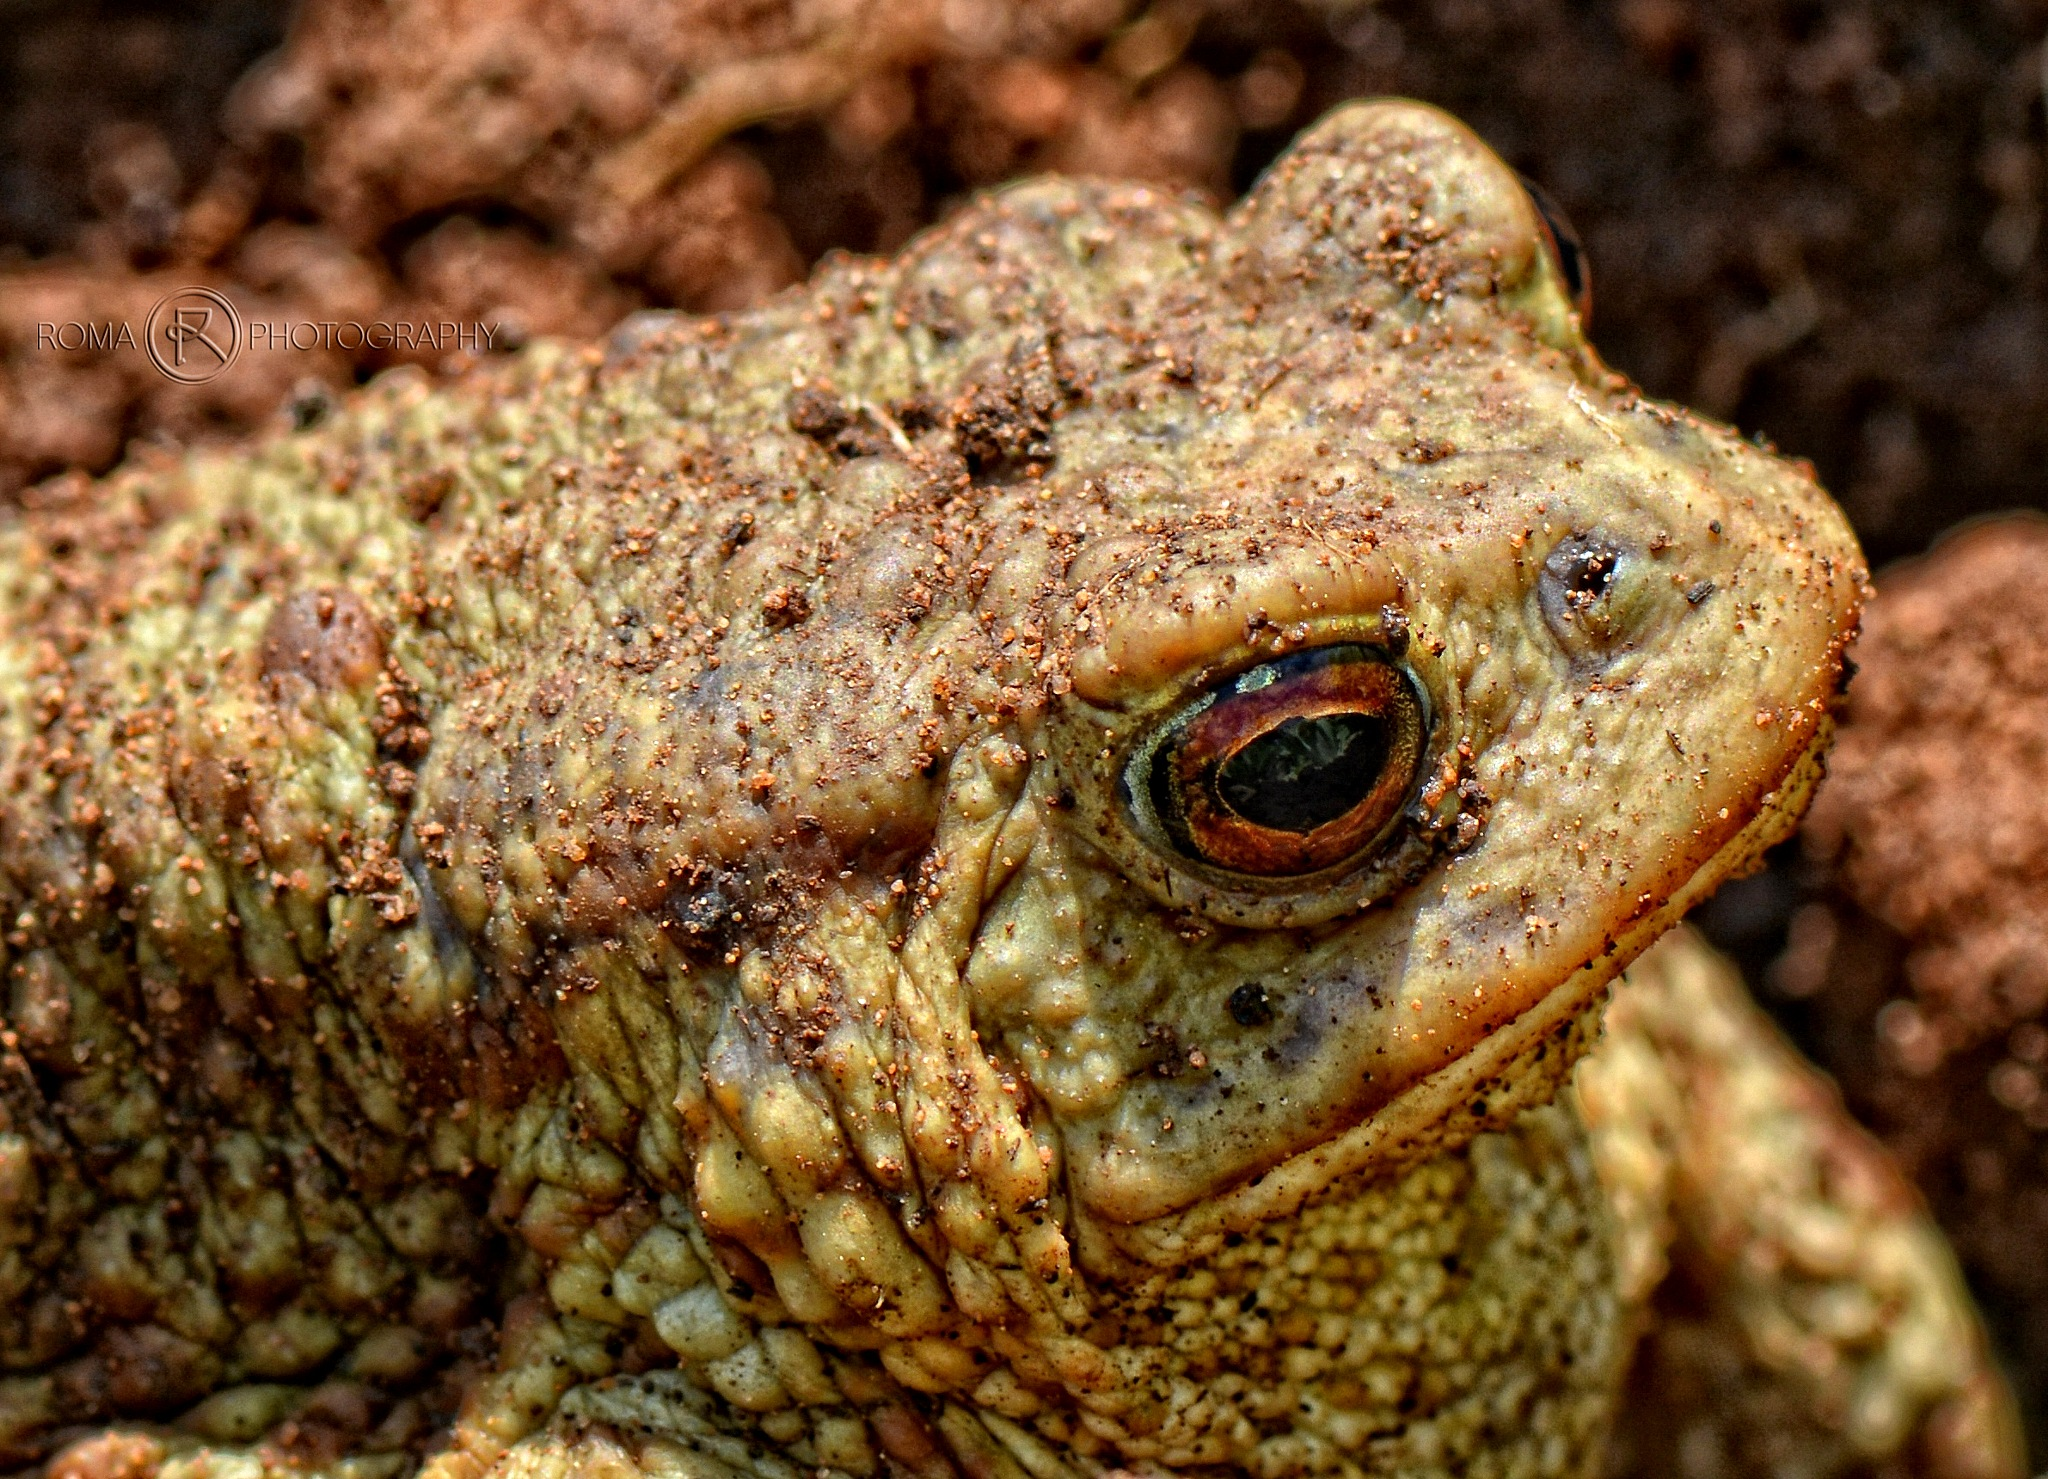 Mr. Frog by Roma Photography